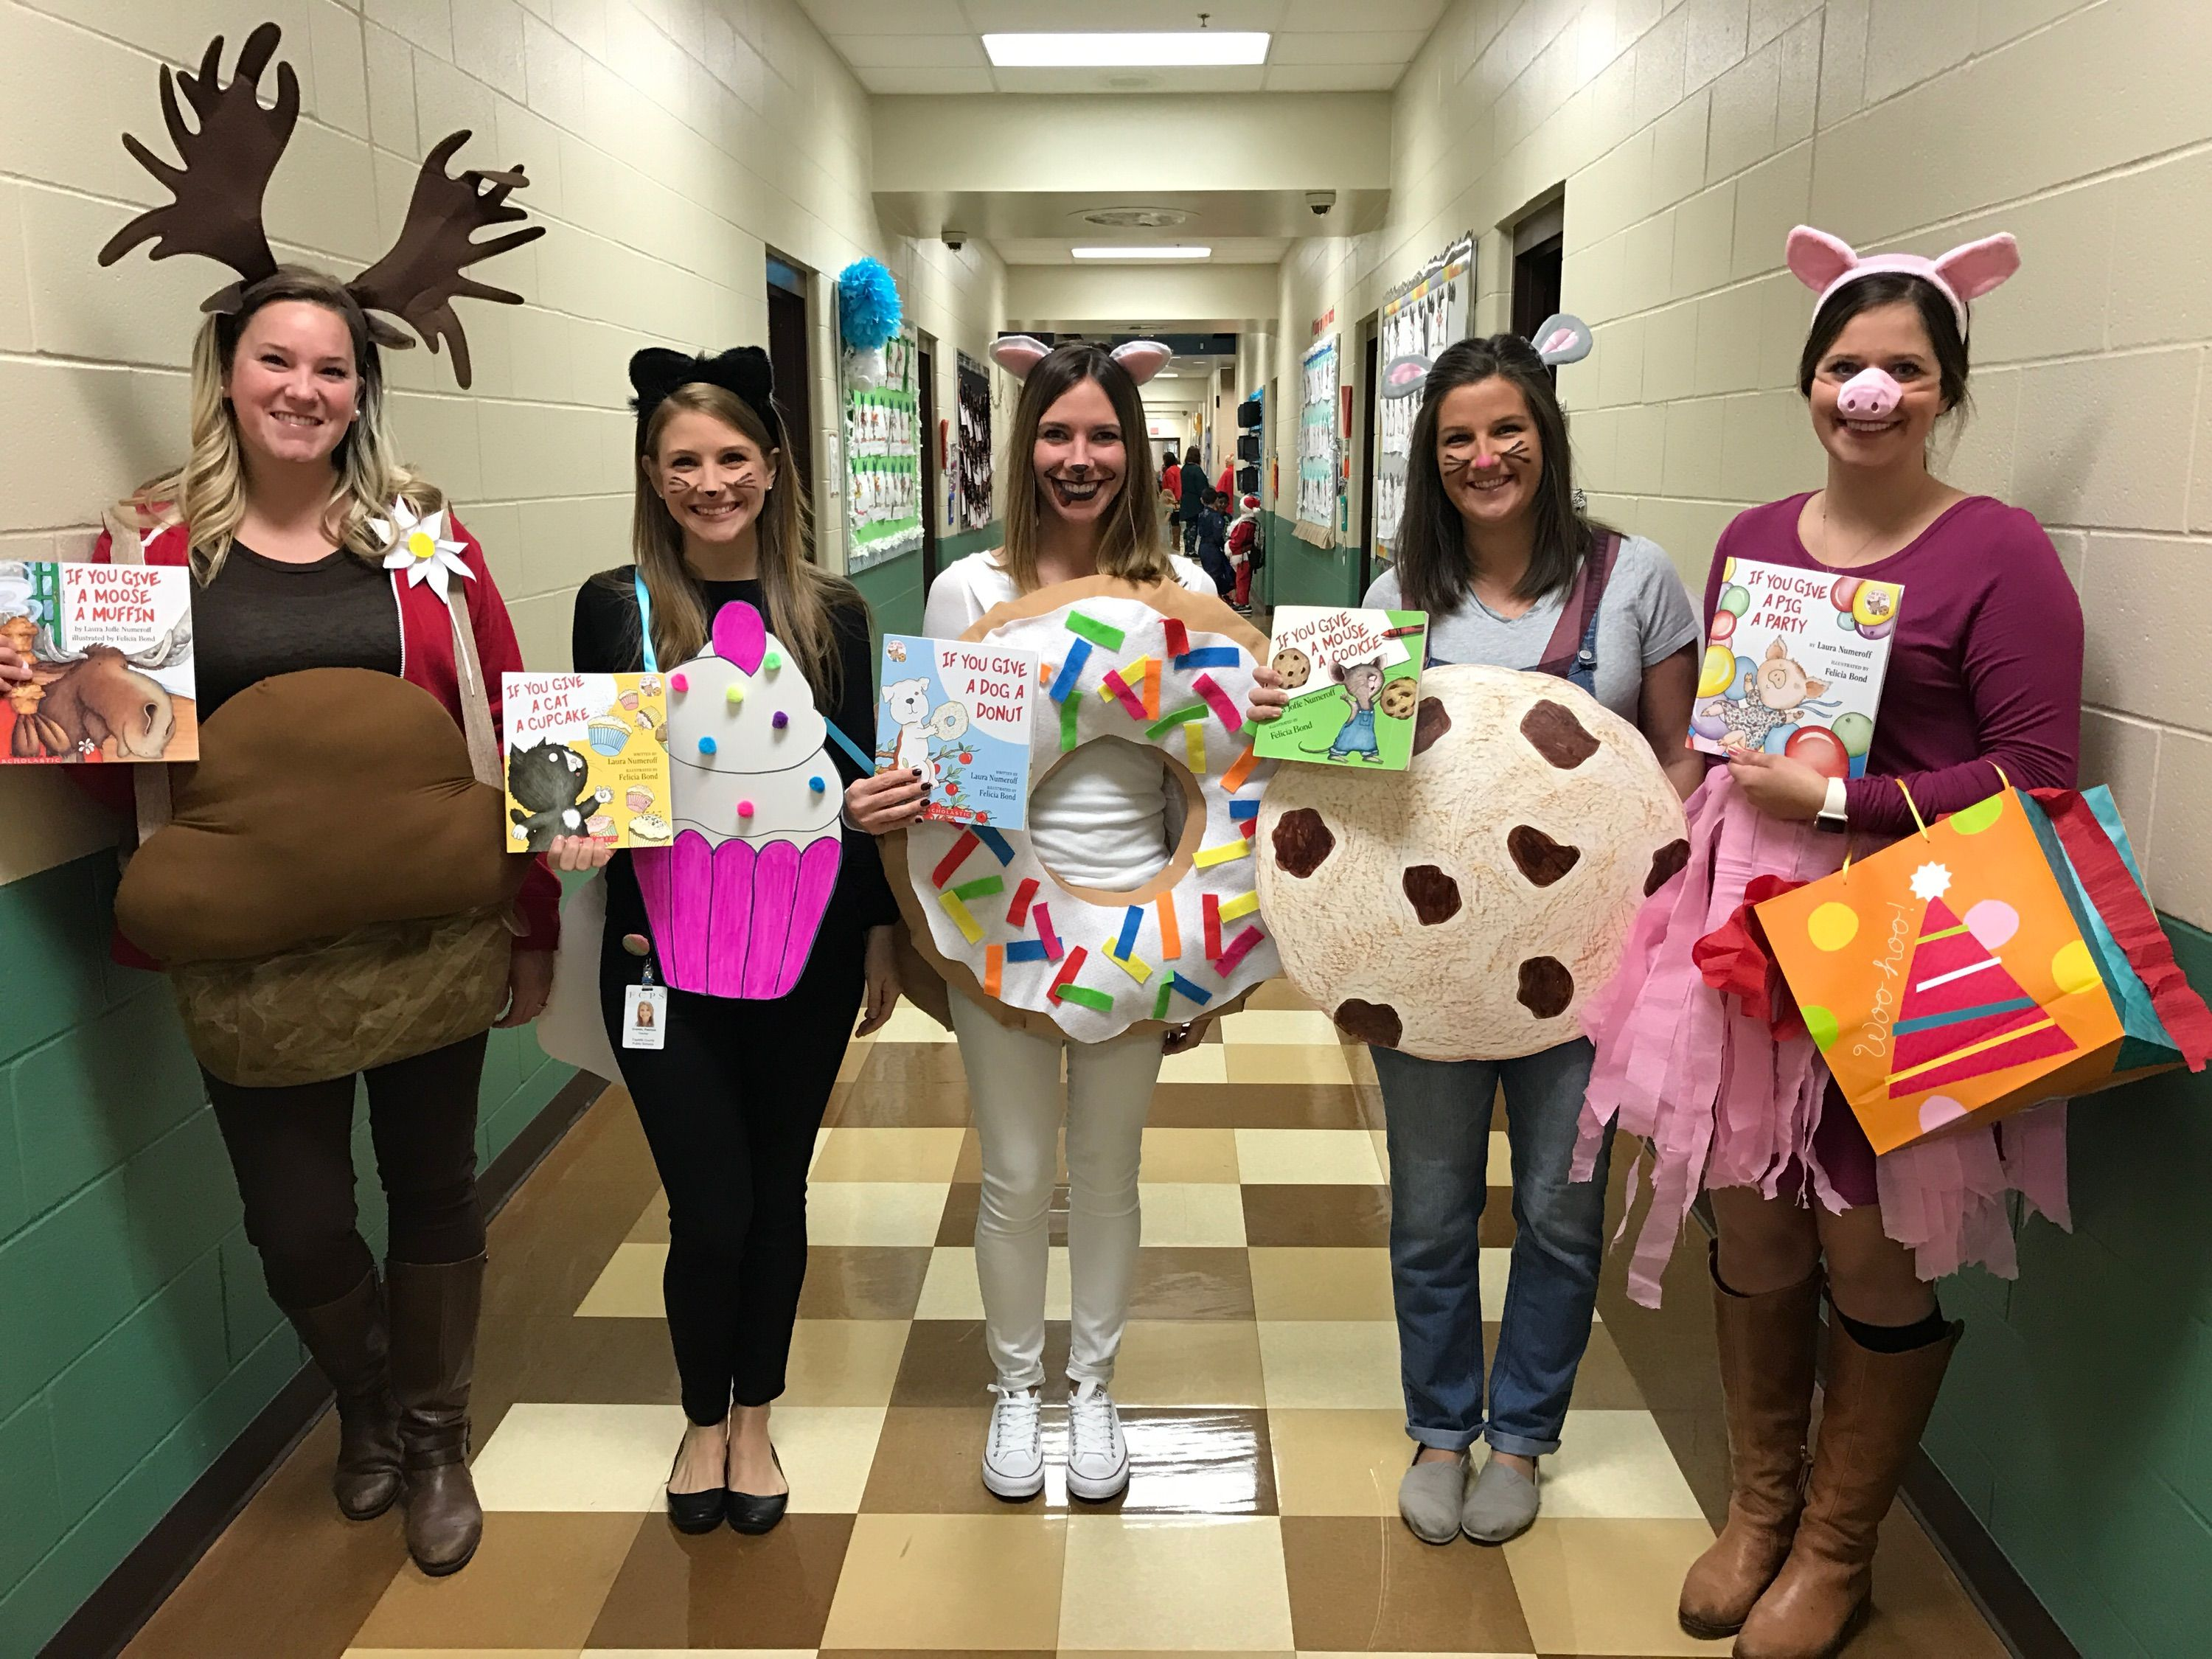 21 costume ideas for teachers kiosk halloween costumes and costumes solutioingenieria Image collections